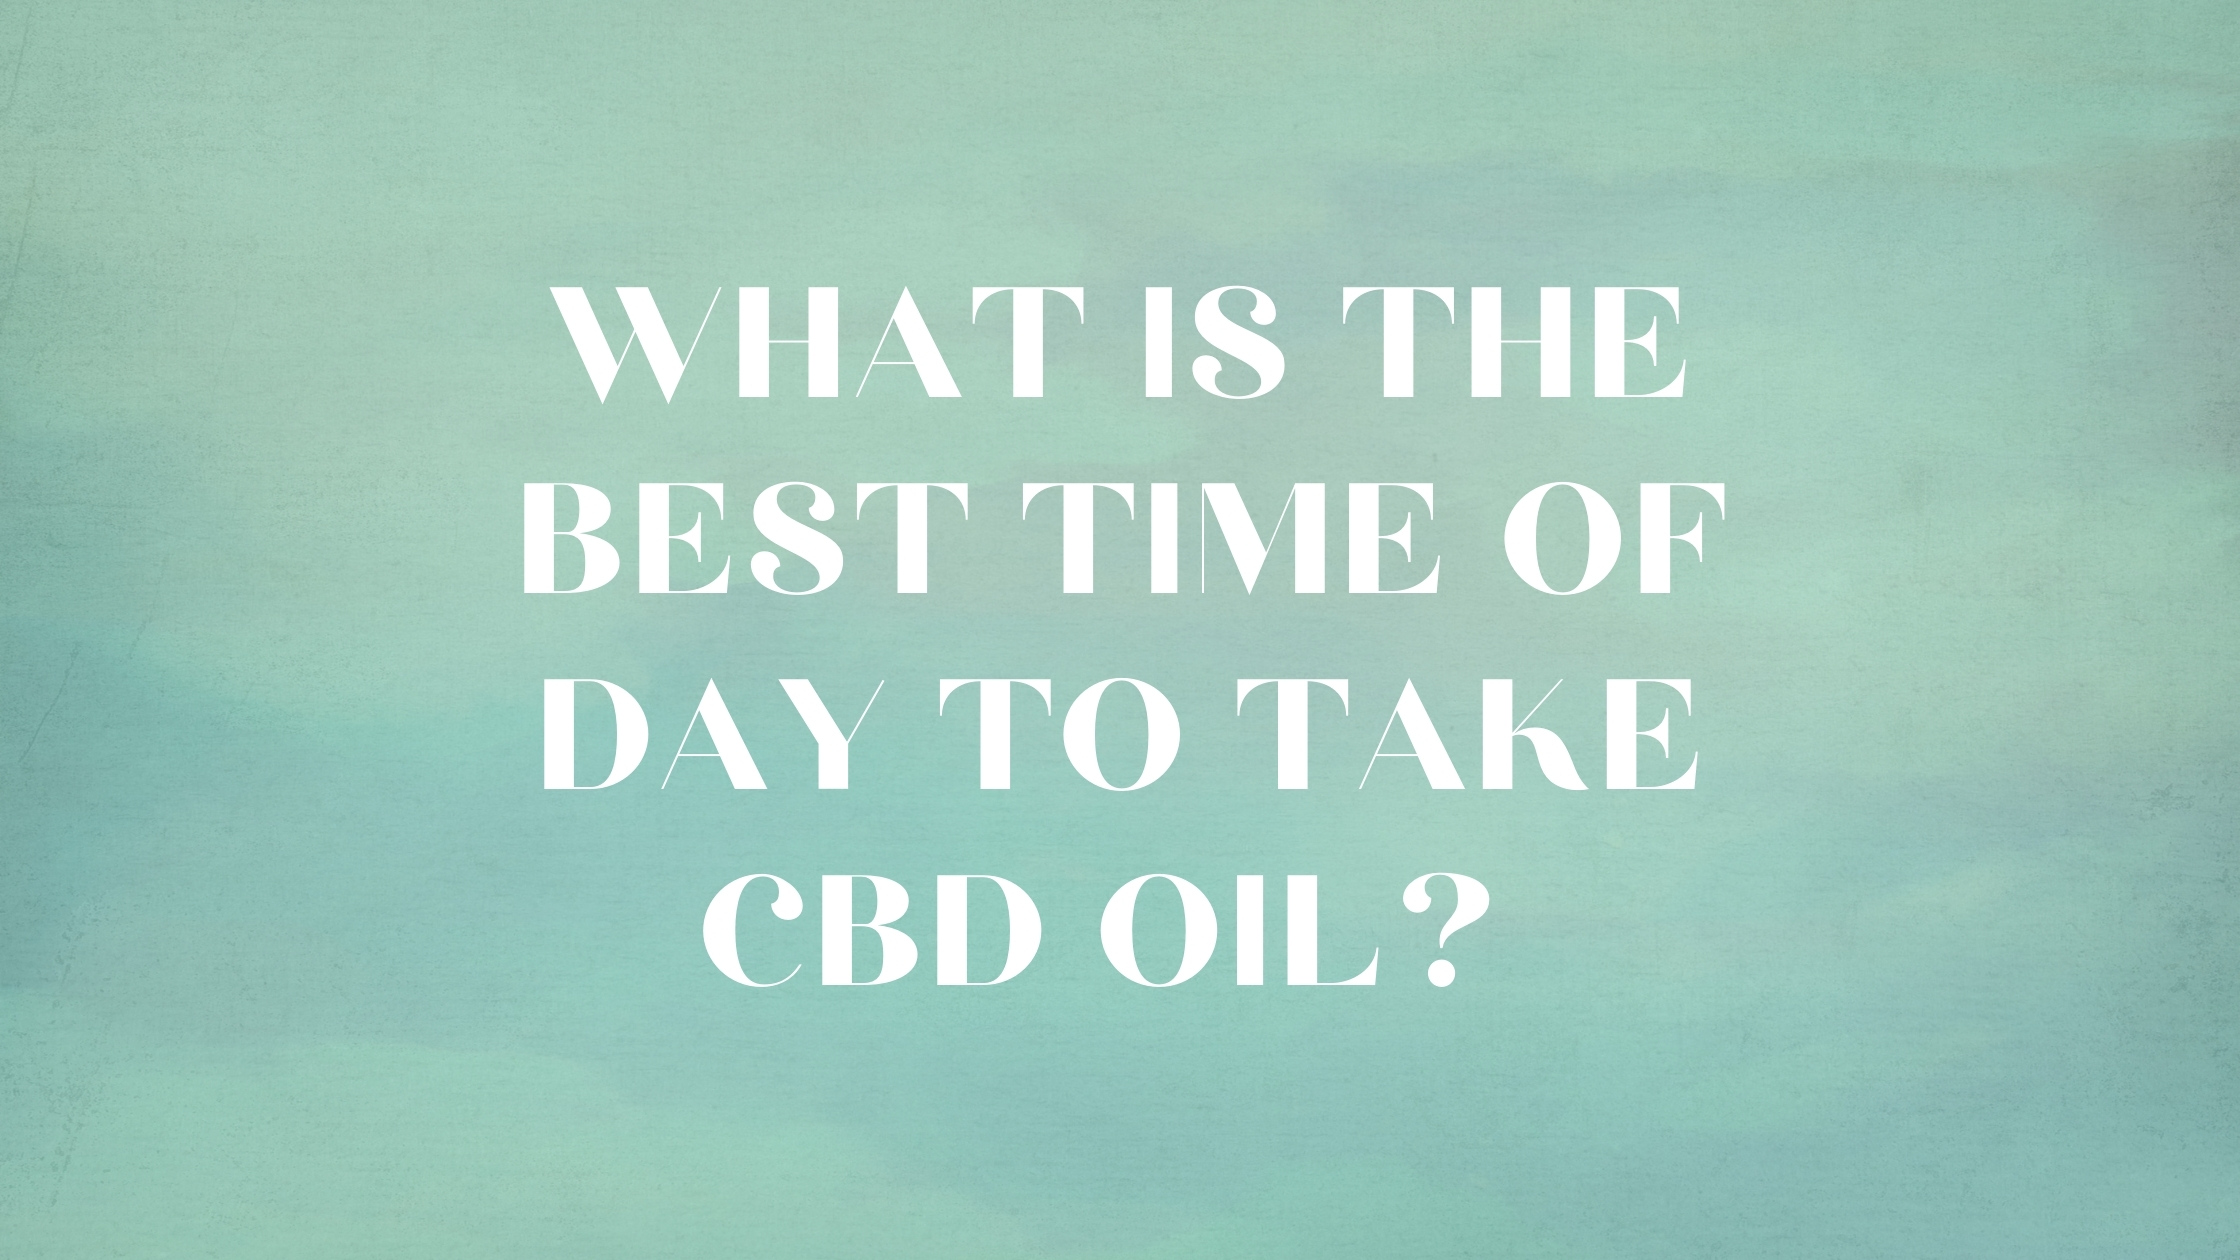 best time of day to take cbd oil